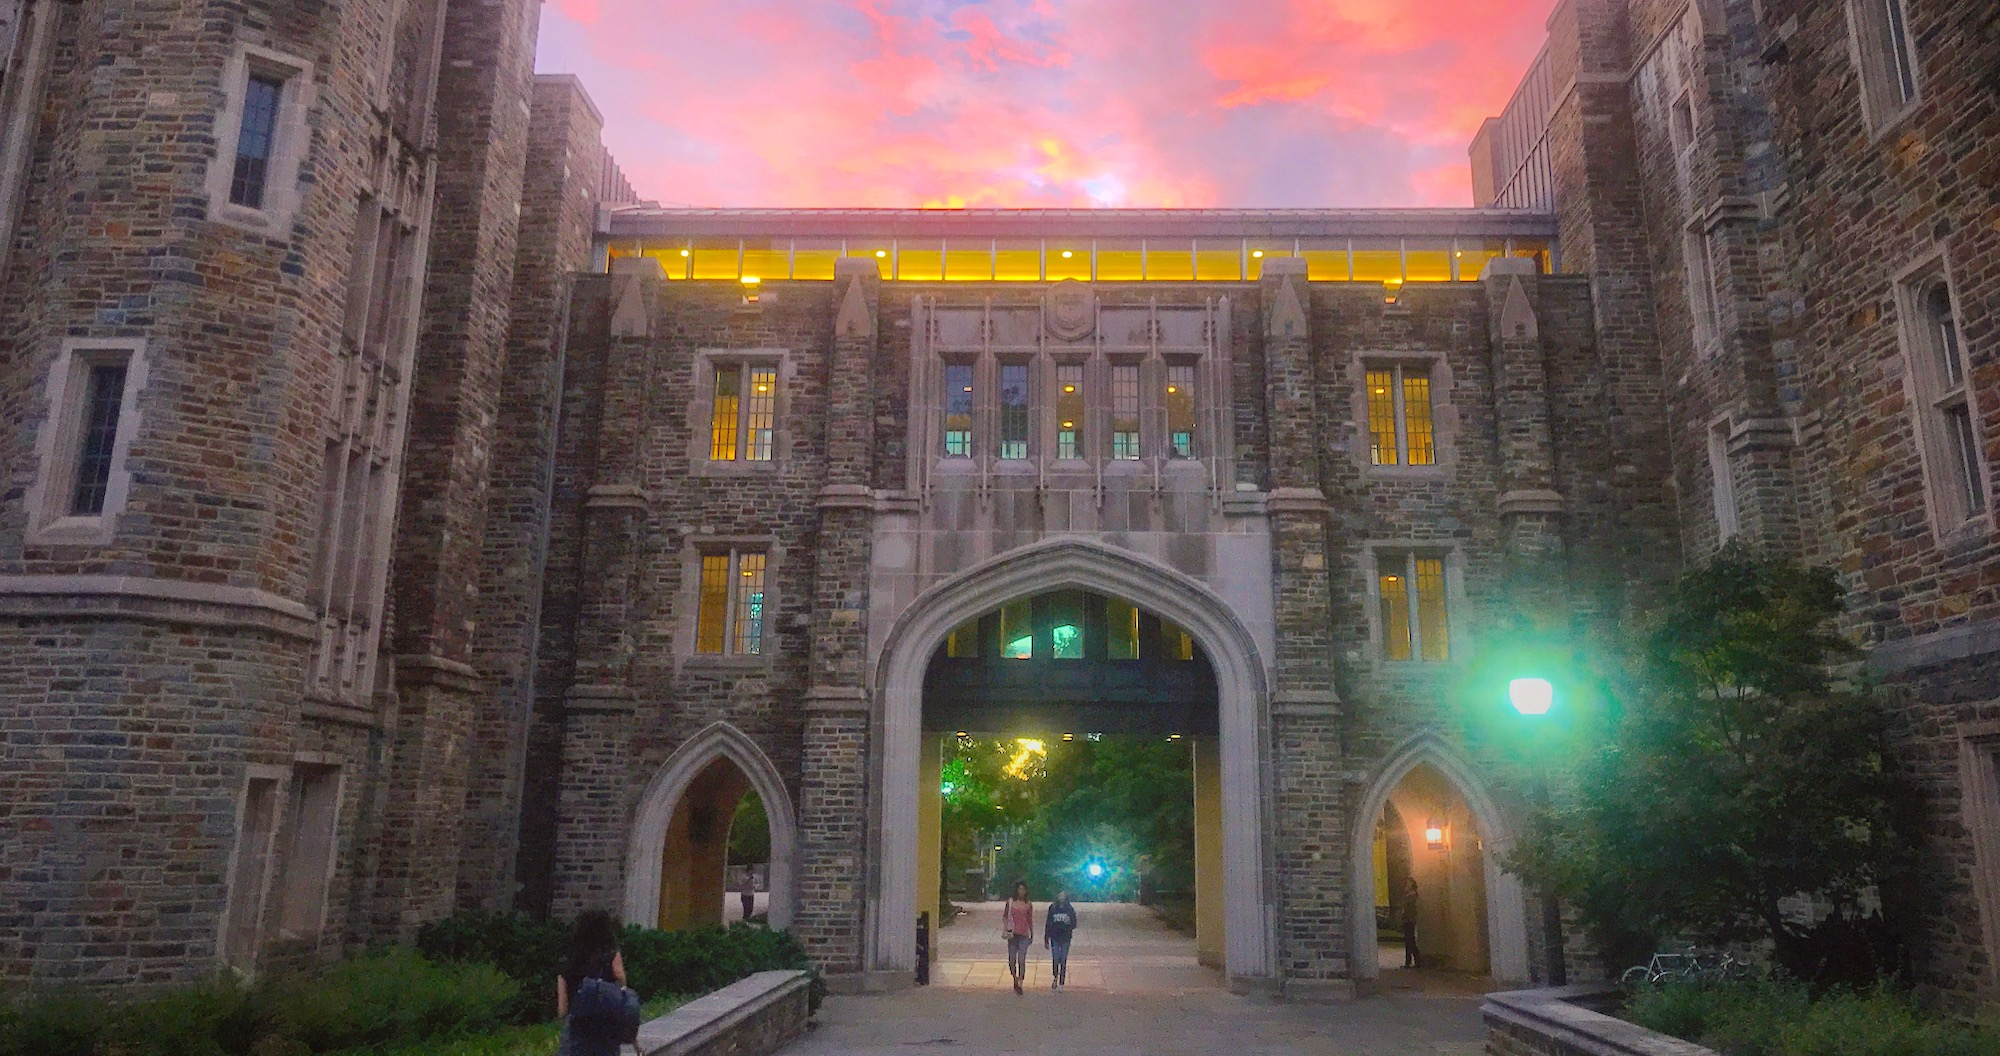 sunset over Perkins library